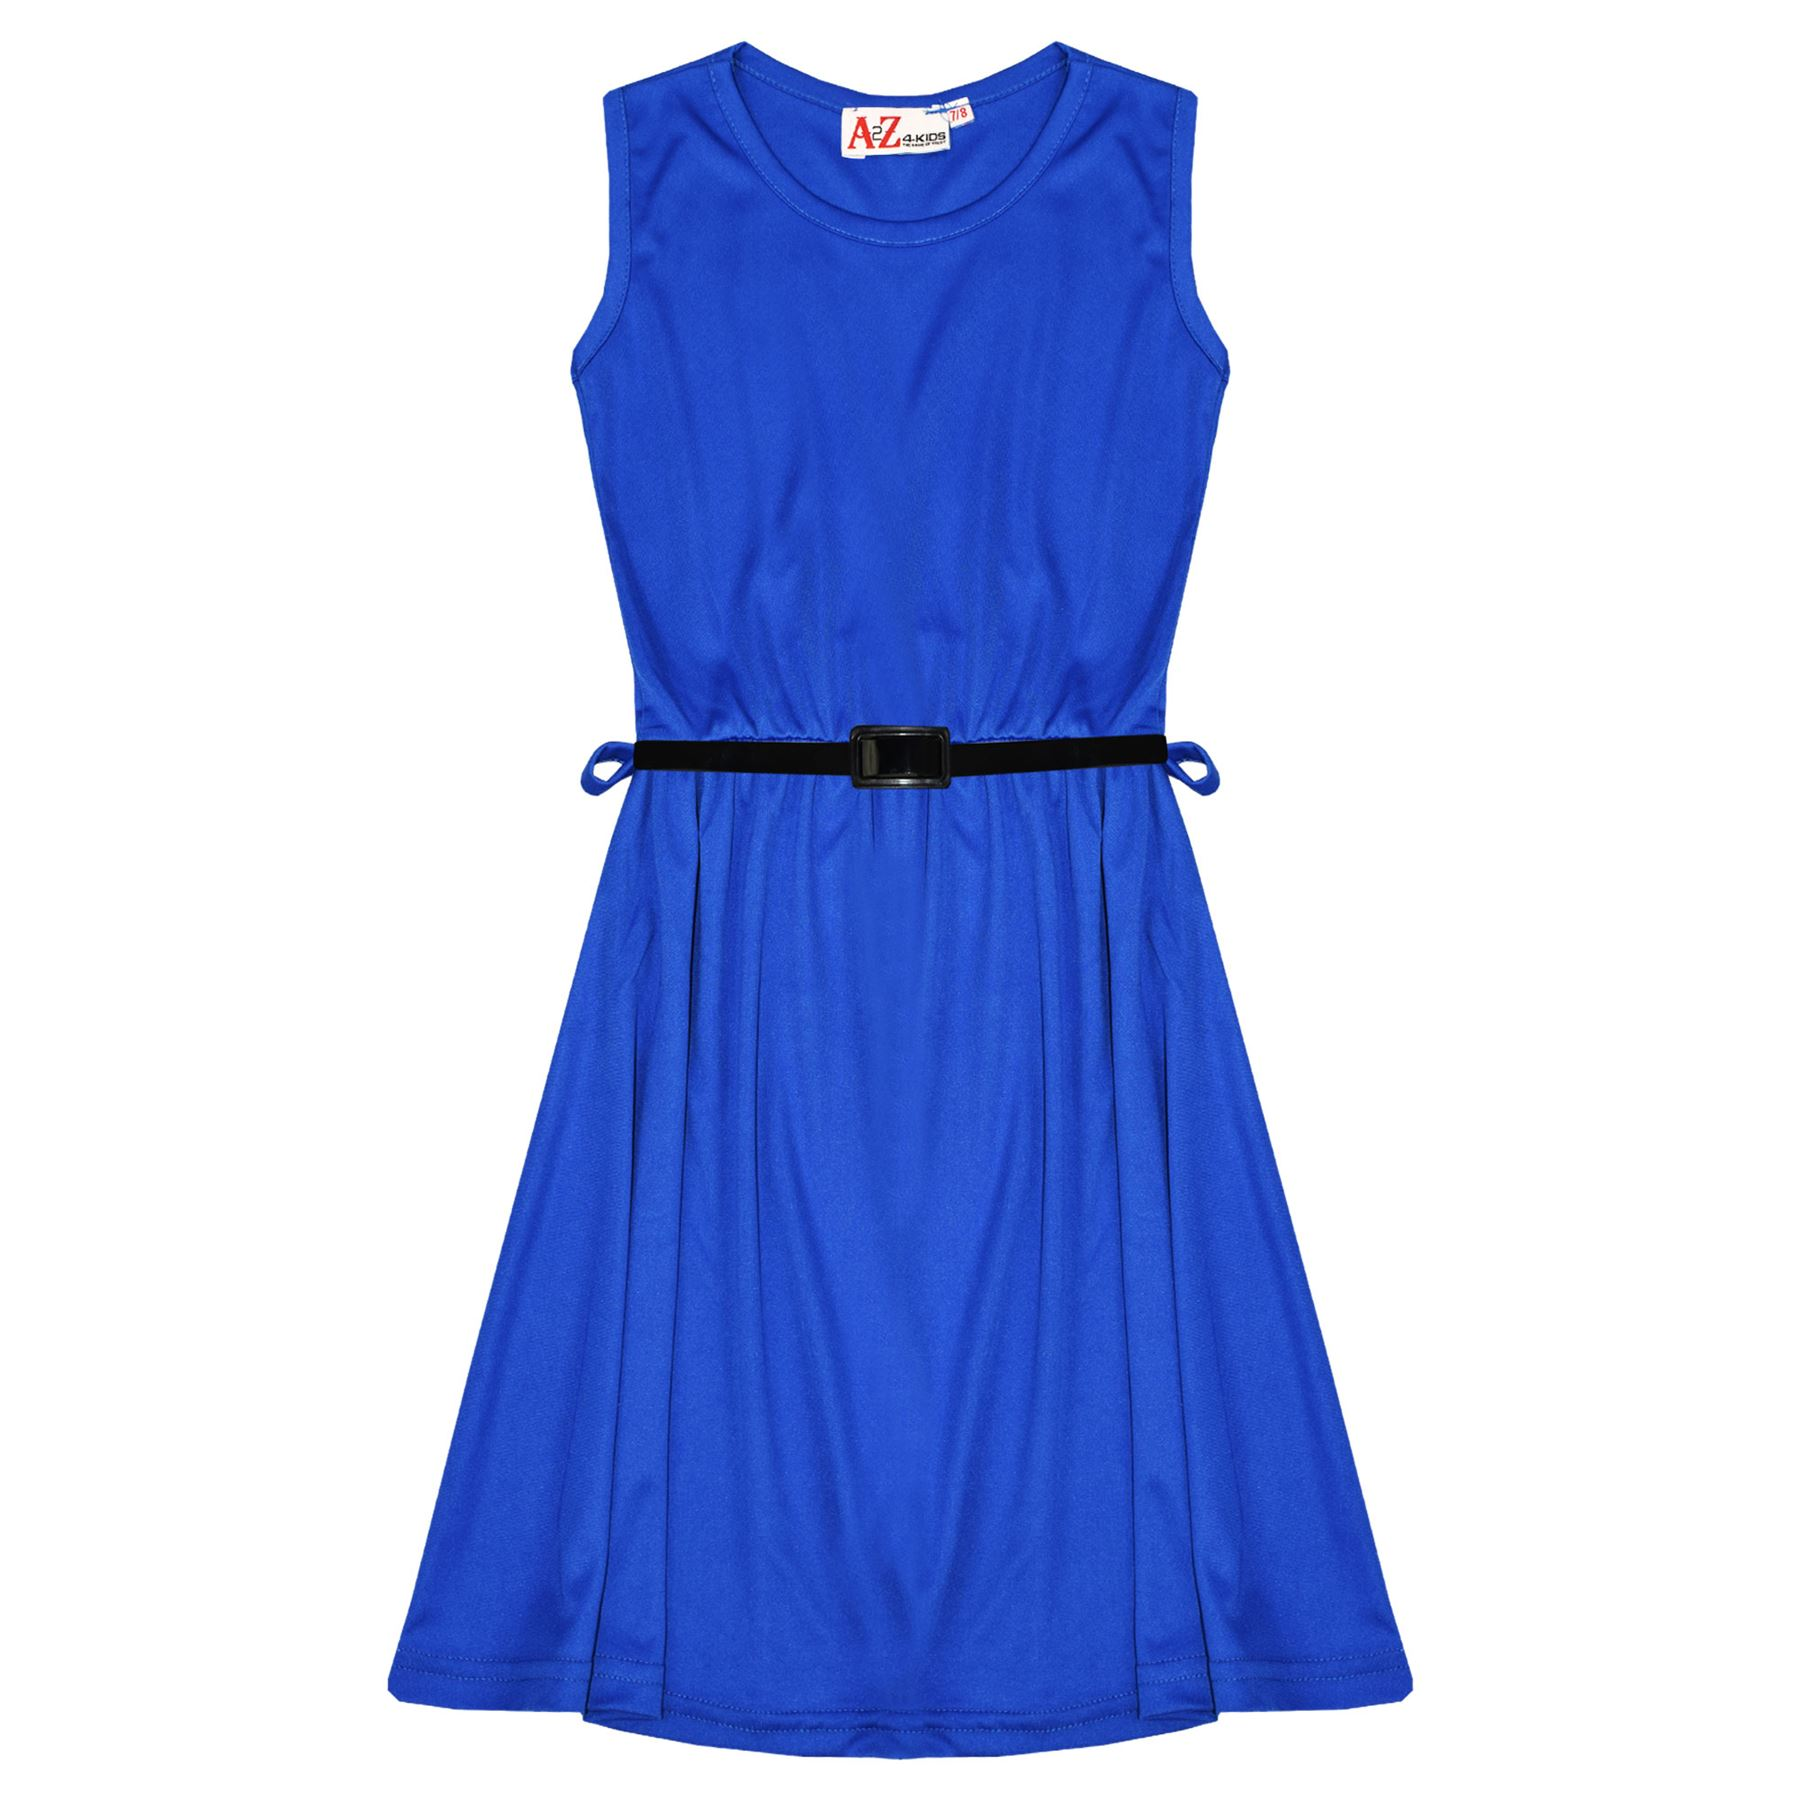 Girls-Skater-Dress-Kids-Party-Dresses-With-Free-Belt-5-6-7-8-9-10-11-12-13-Years miniatuur 73